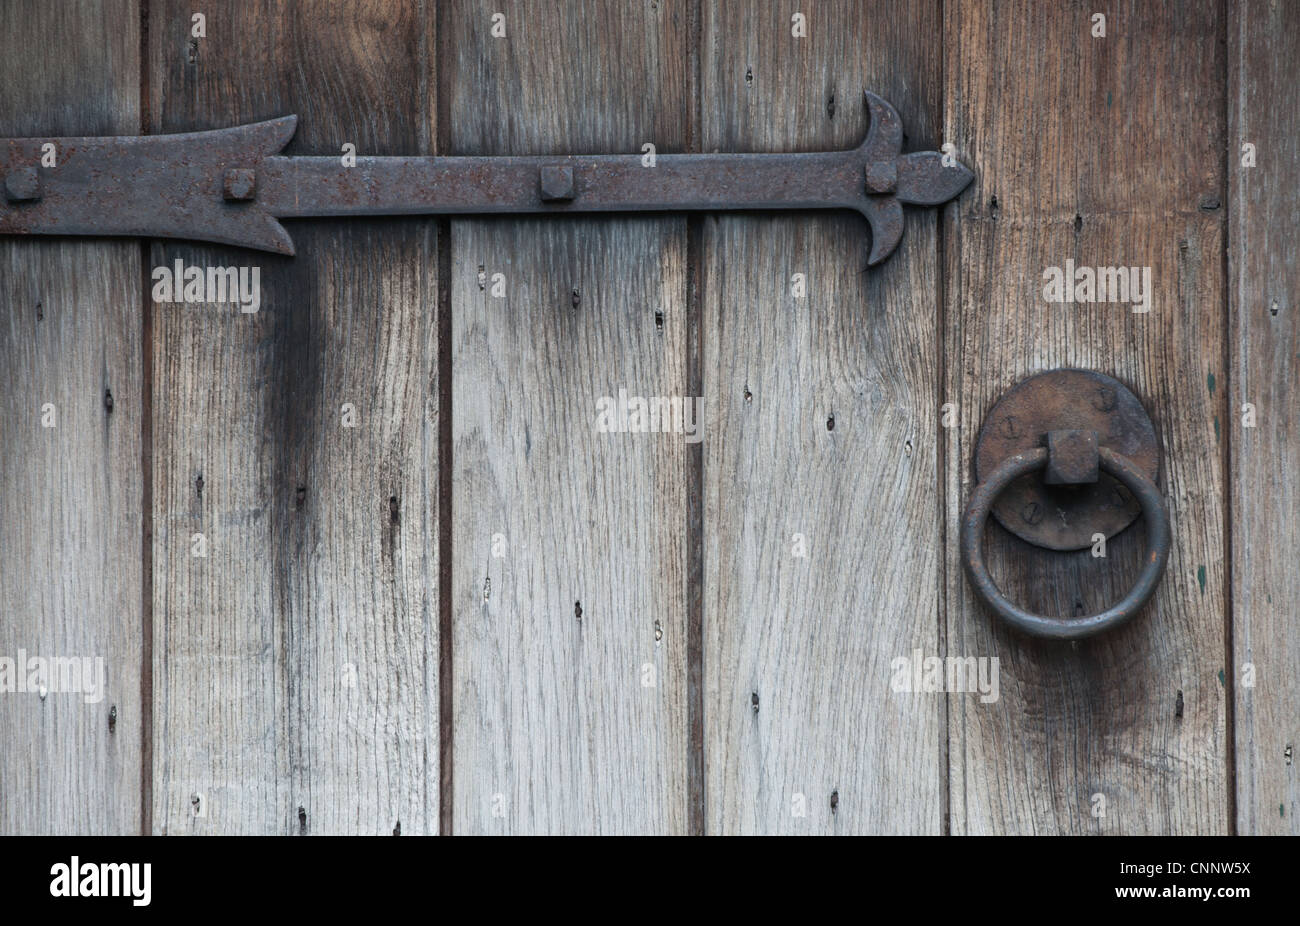 925 #675952 Old Wrought Iron Hinges And Door Handle On Weathered Wooden Door Stock  image Wrought Iron And Wood Doors 40031300